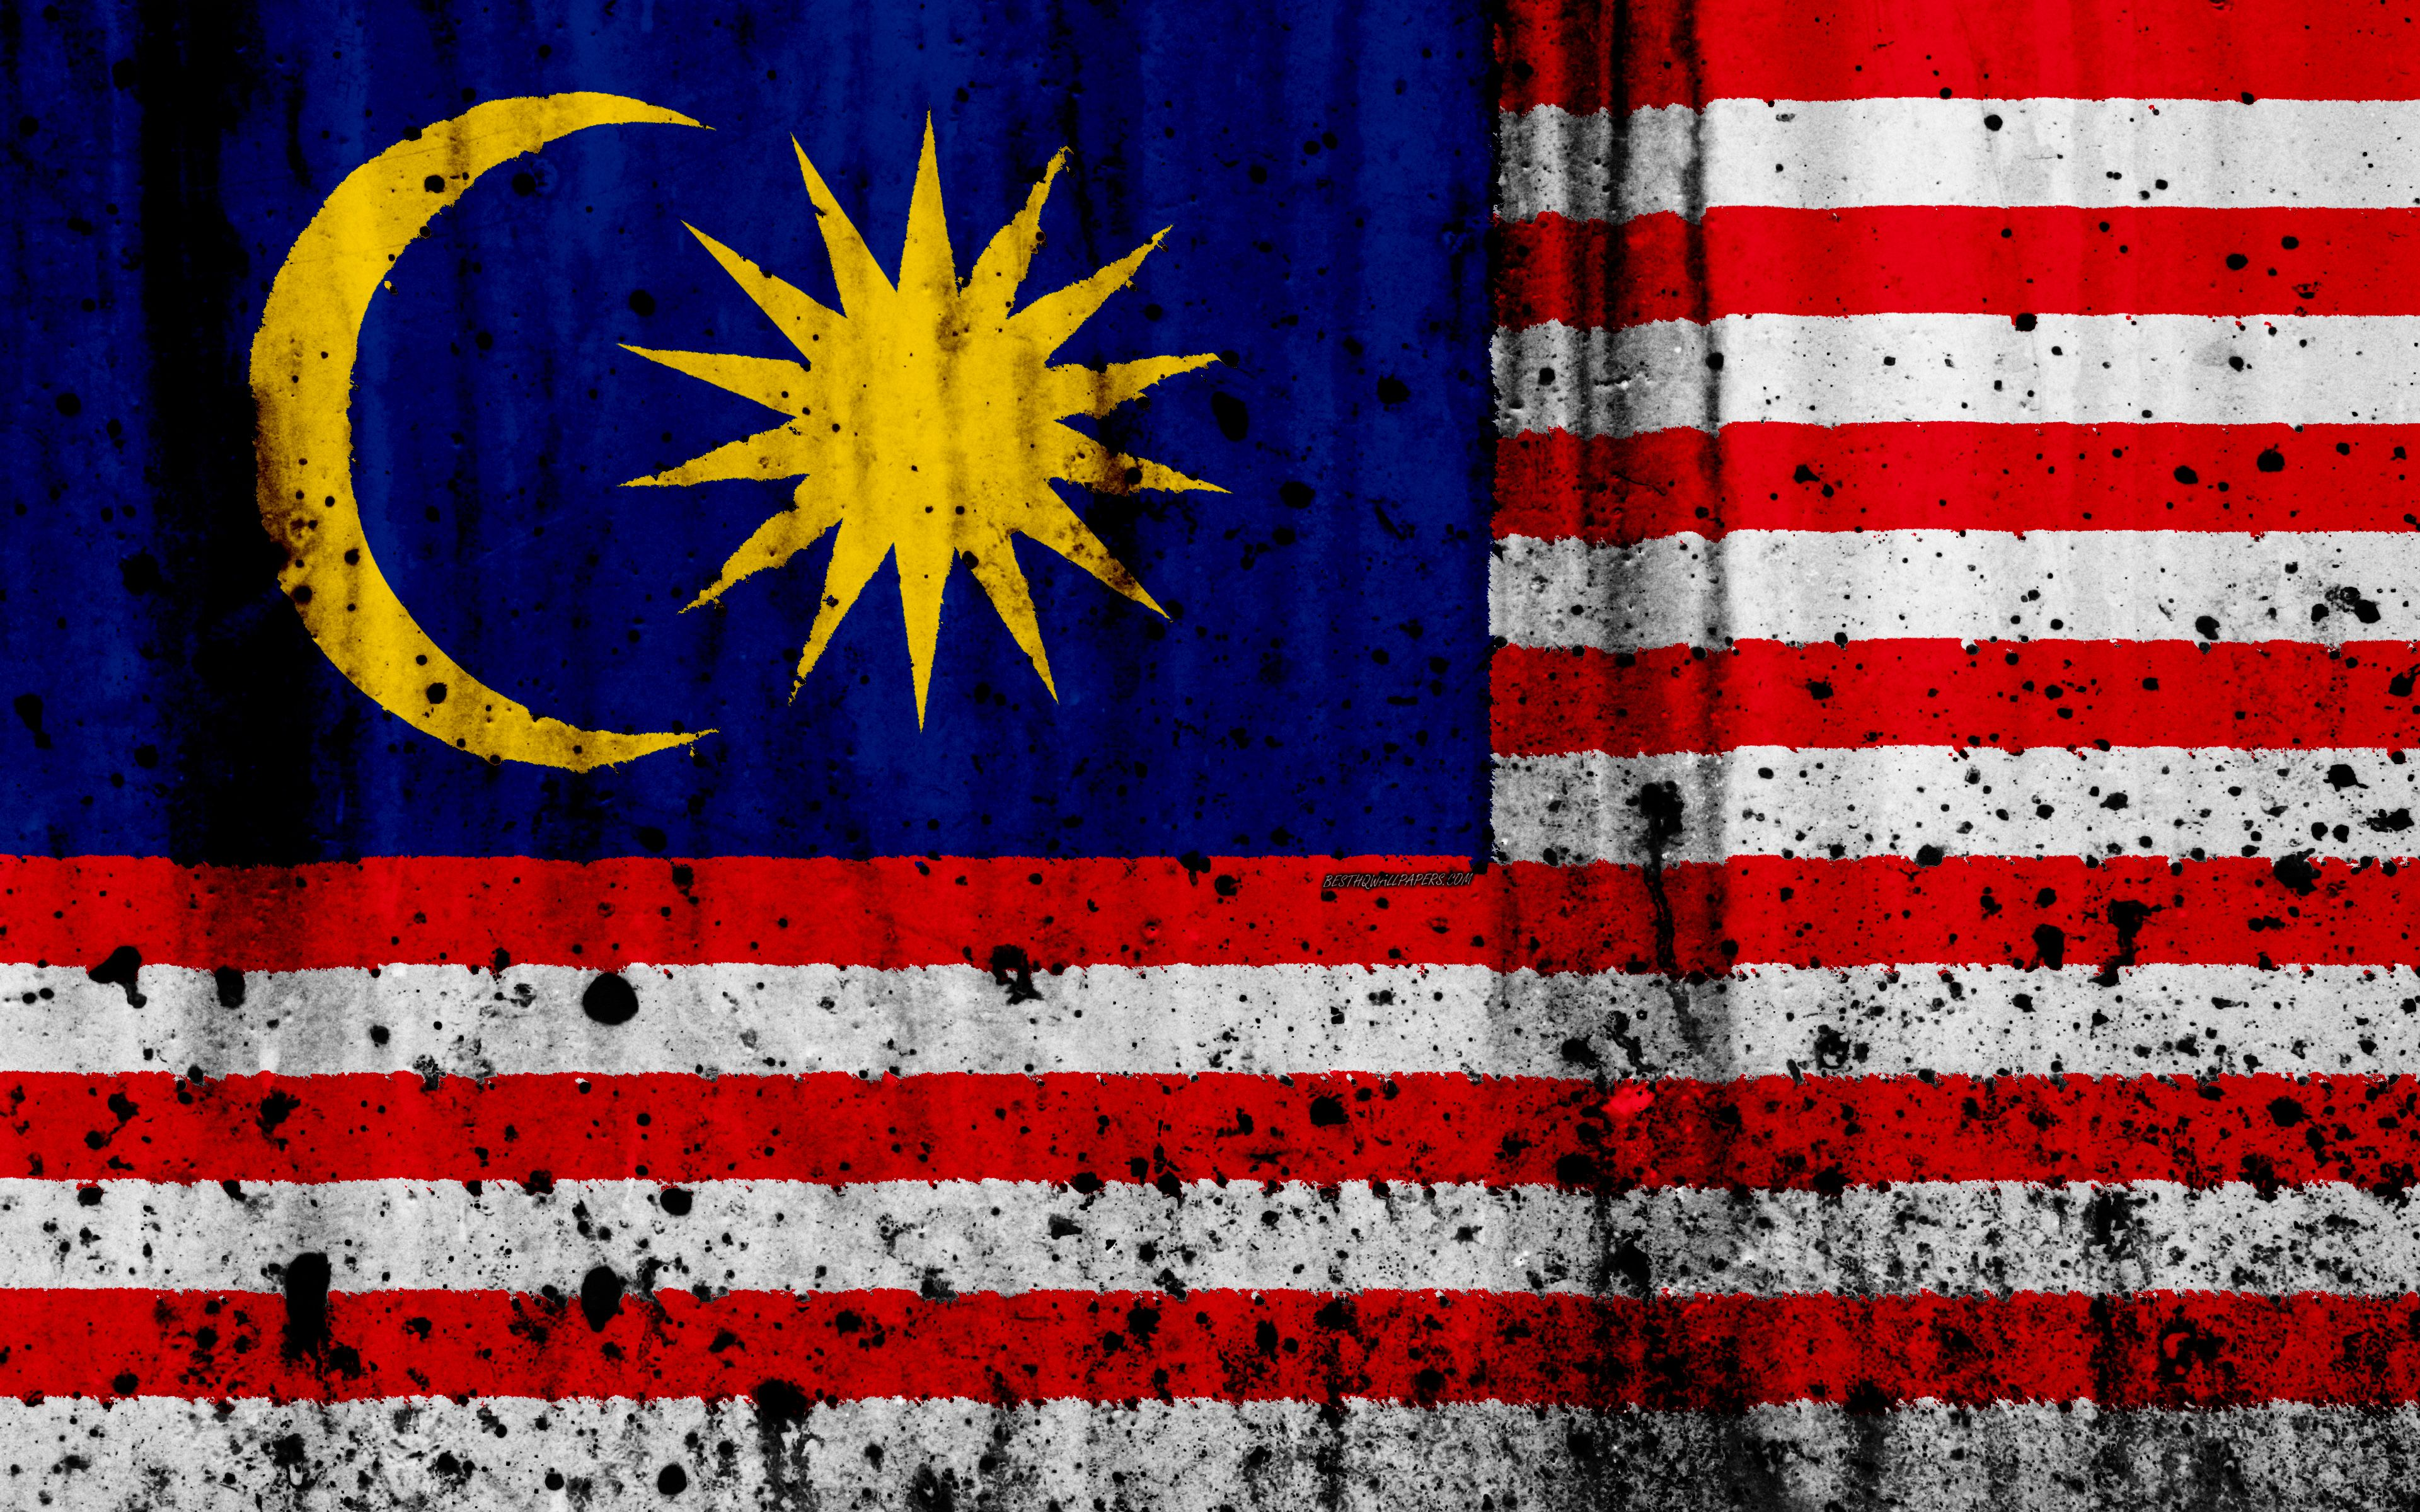 Download wallpapers Malaysian flag, 4k, grunge, flag of Malaysia ...